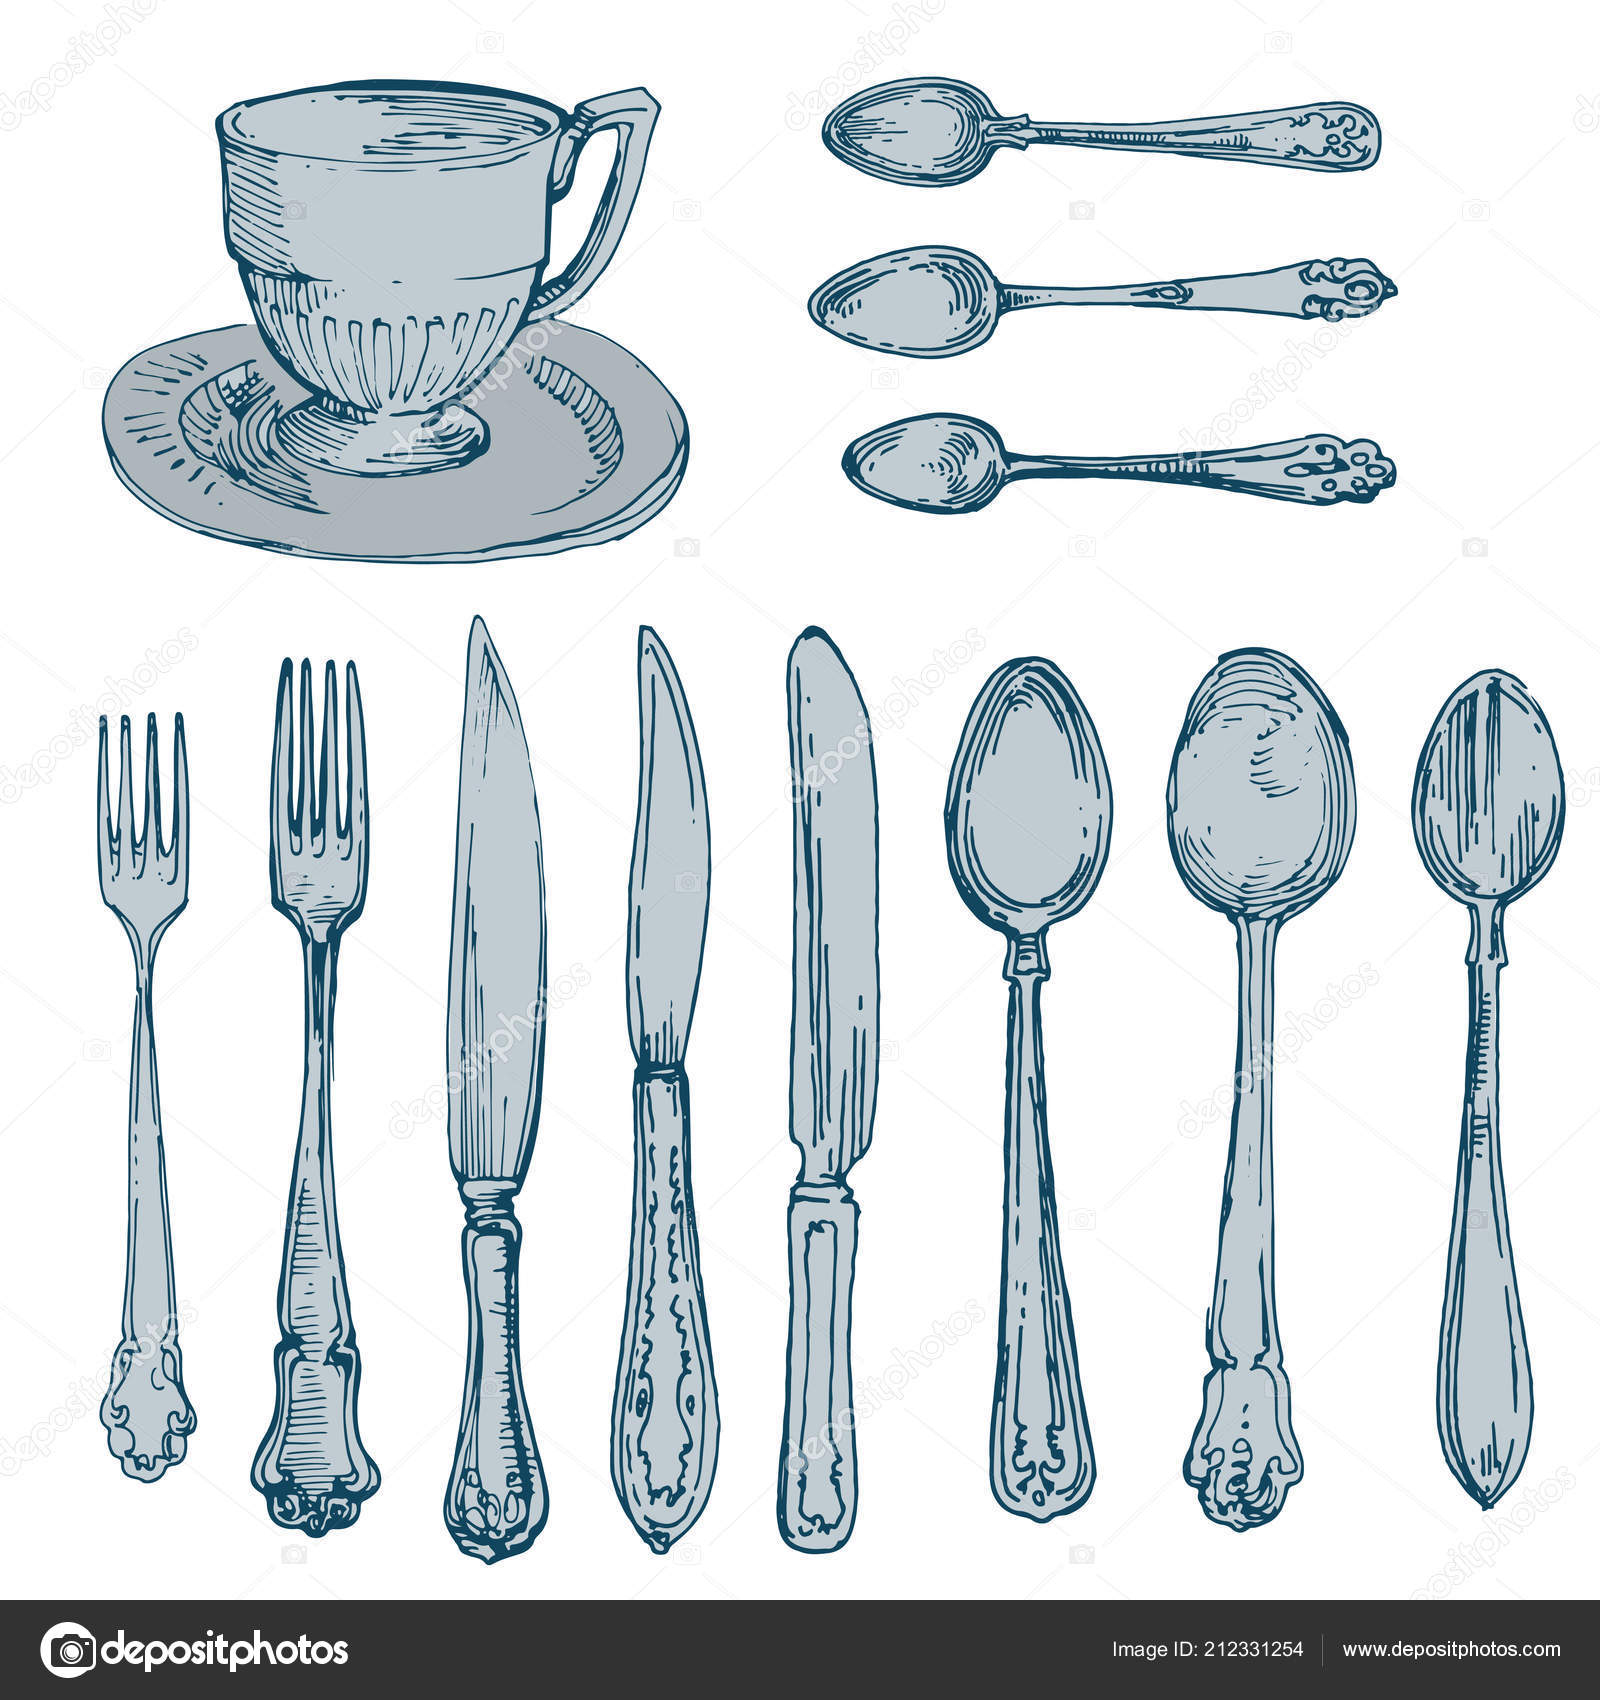 Spoons Forks Cup Knives Kitchen Stuff Silverware Vintage Hand Drawn ...